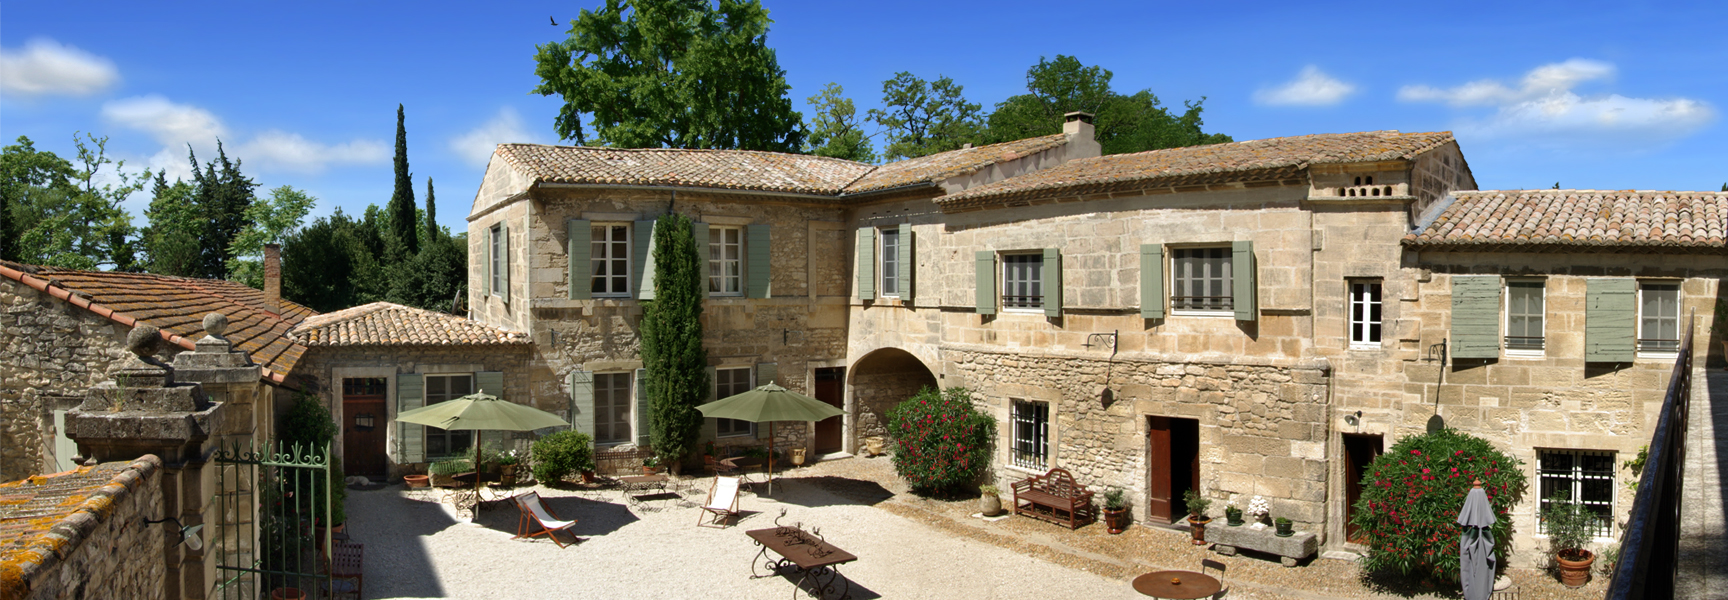 Spend a whole week end in a wedding venue in french for French provence style homes